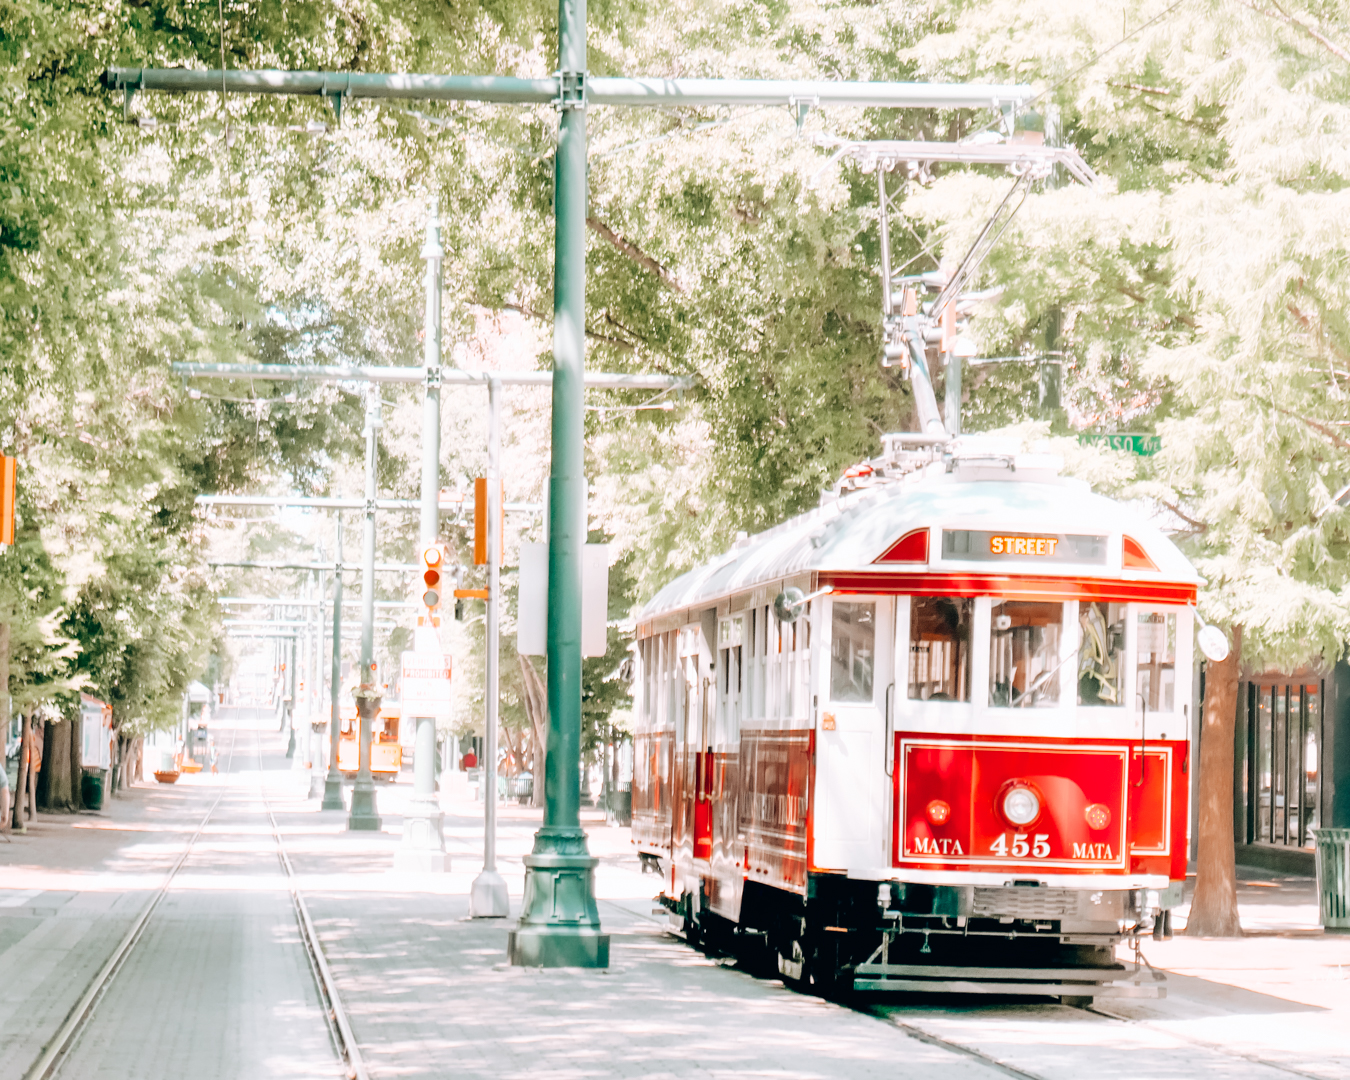 Red trolley and trees